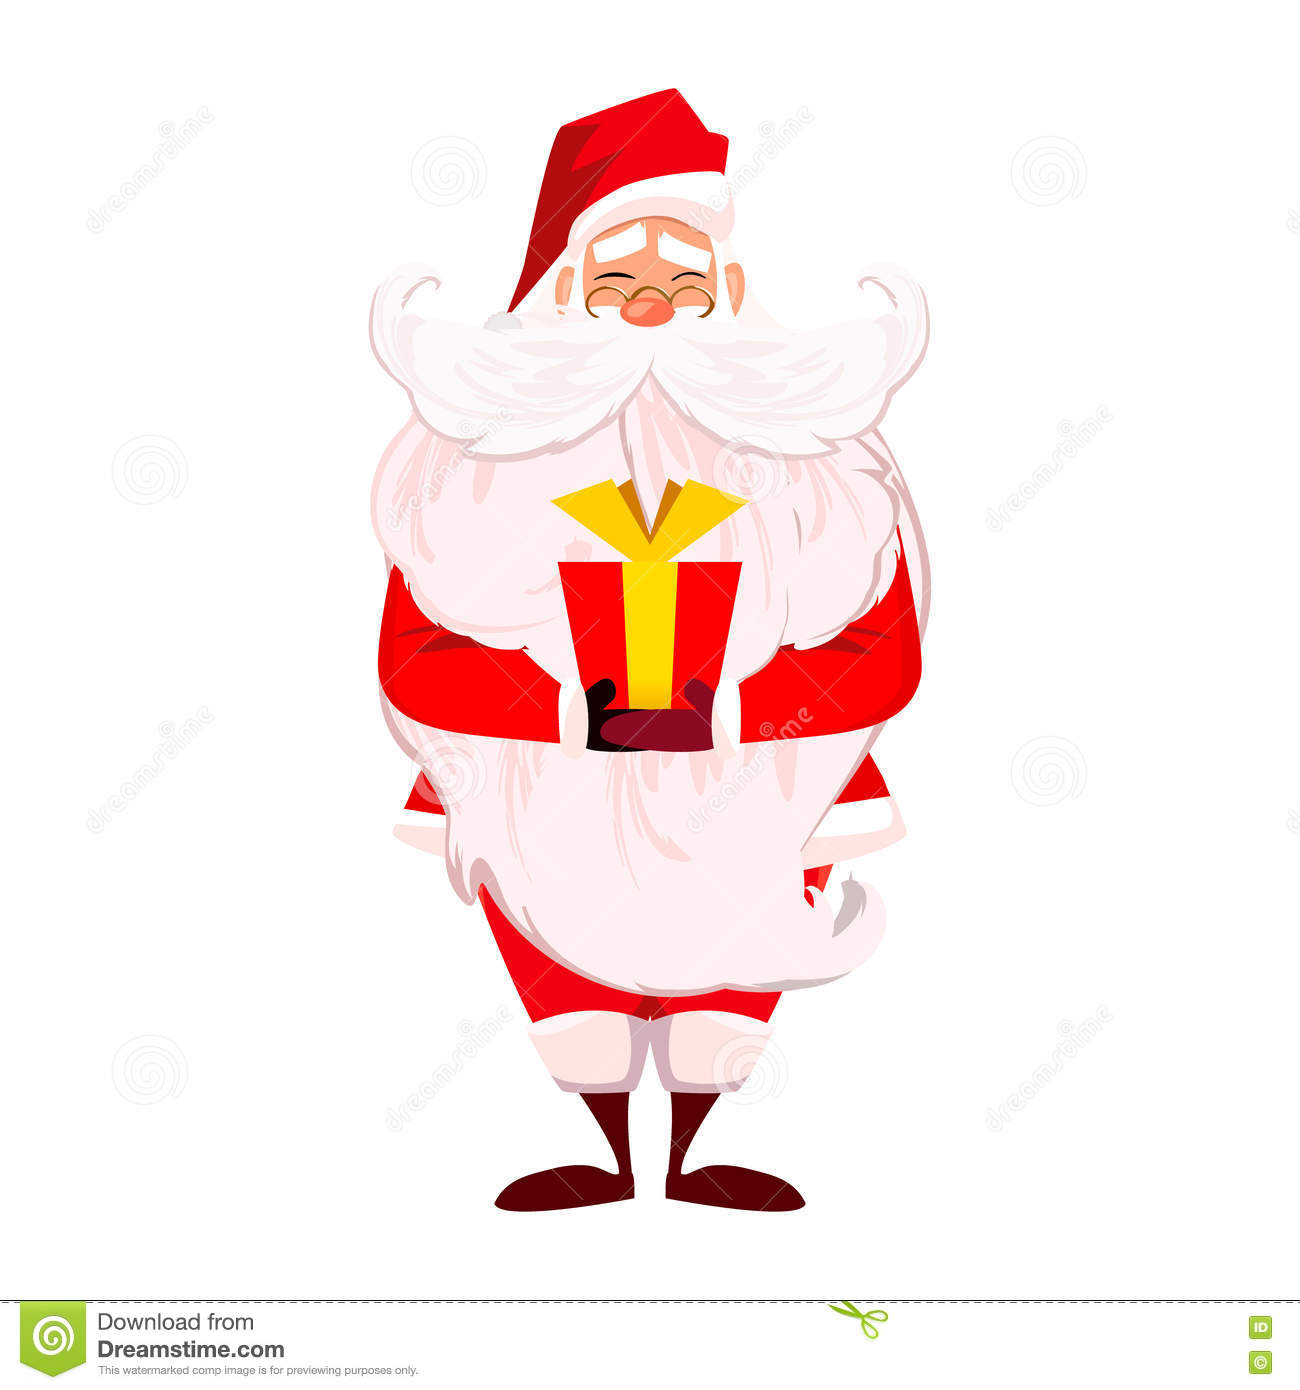 merry christmas happy new year santa claus with long beard and cute moustache in